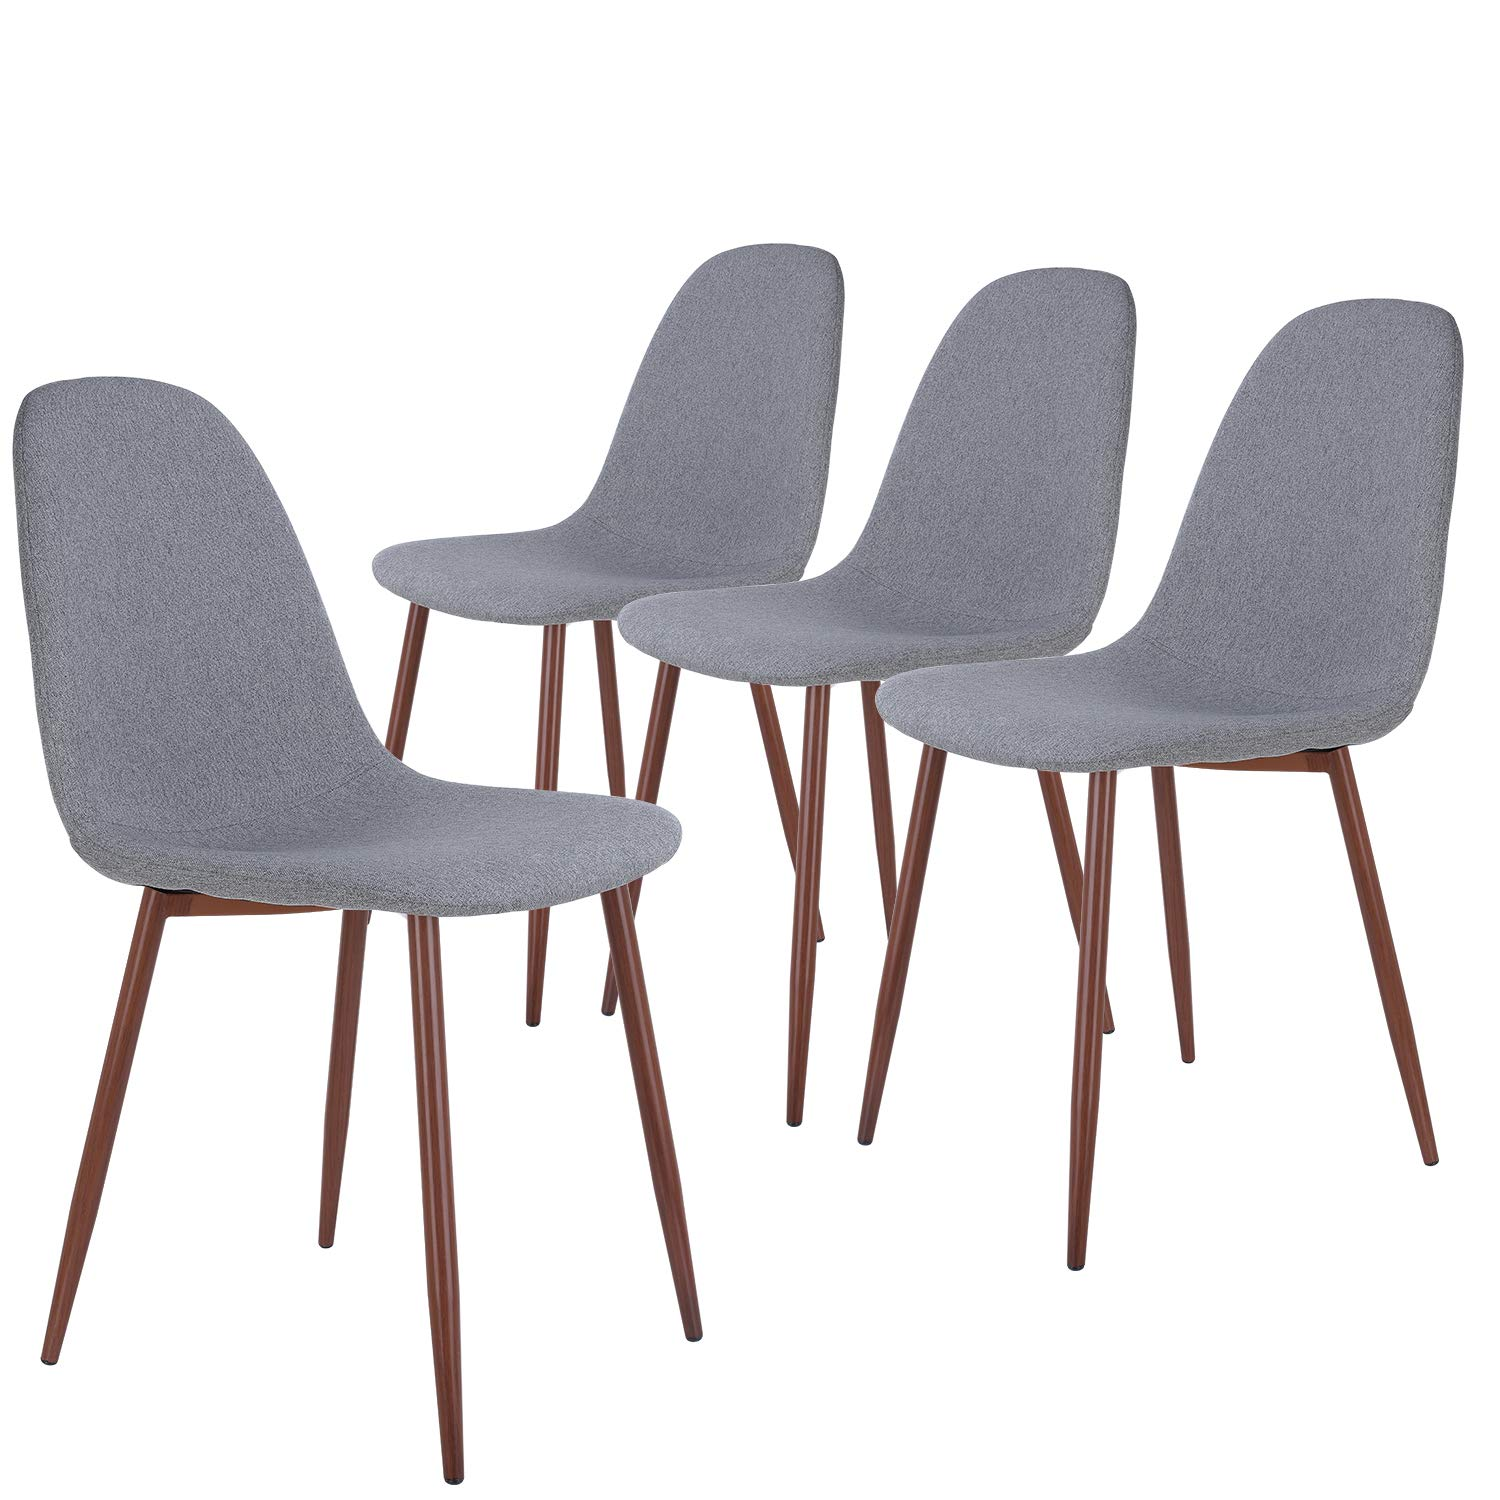 HOMECHO Dining Chairs Set of 4, Fabric Cushion Seat Back Modern Side Chair with Sturdy Metal Legs for Kitchen Living Room, Easy Assembly, Gray